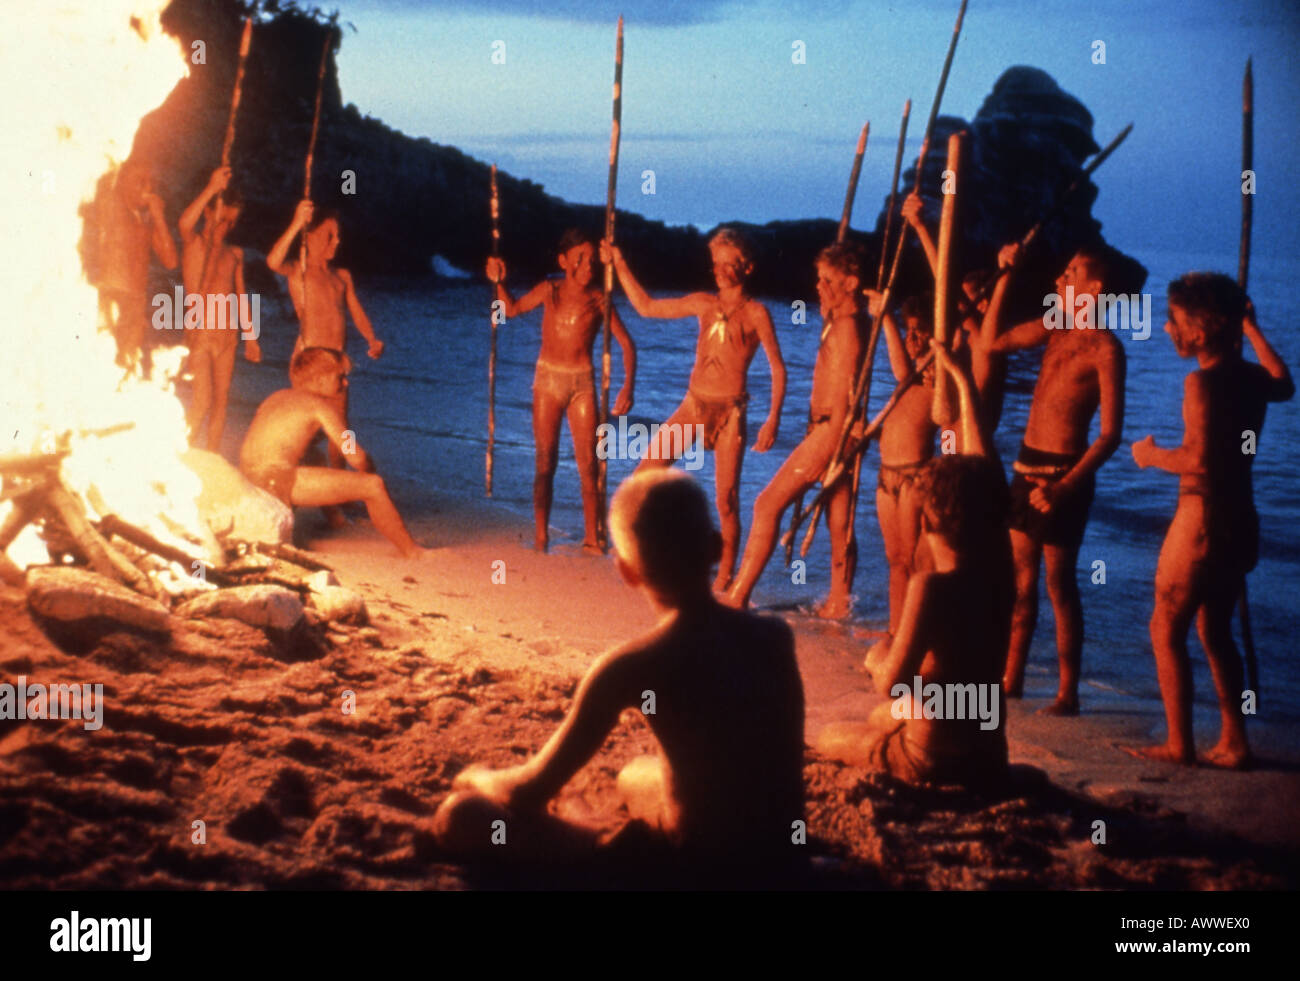 lord of the flies 1990 full movie download